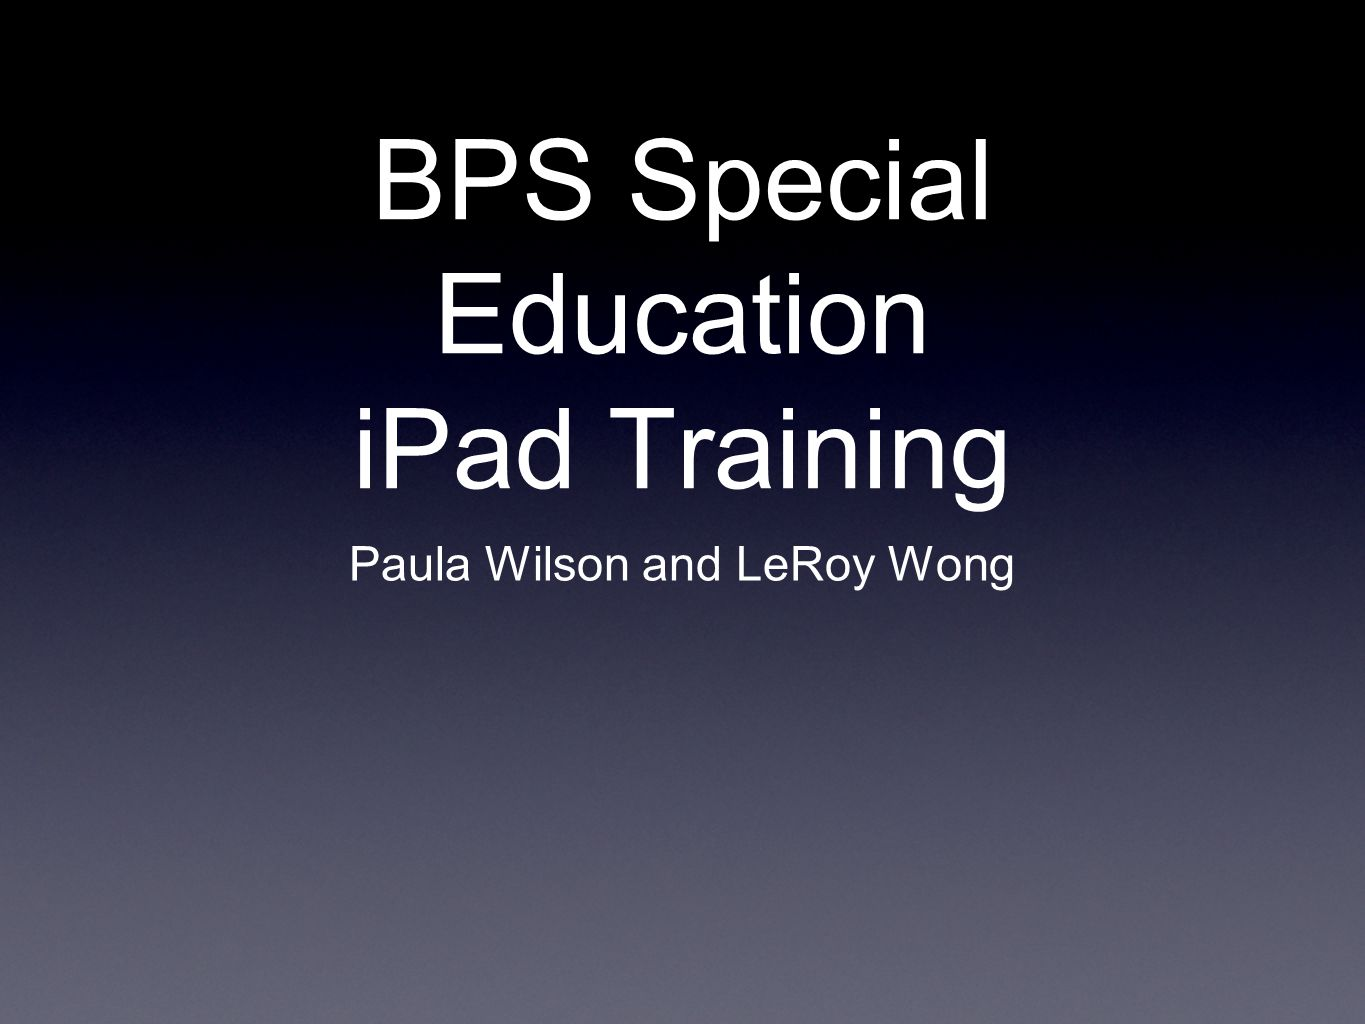 BPS Special Education iPad Training Paula Wilson and LeRoy Wong